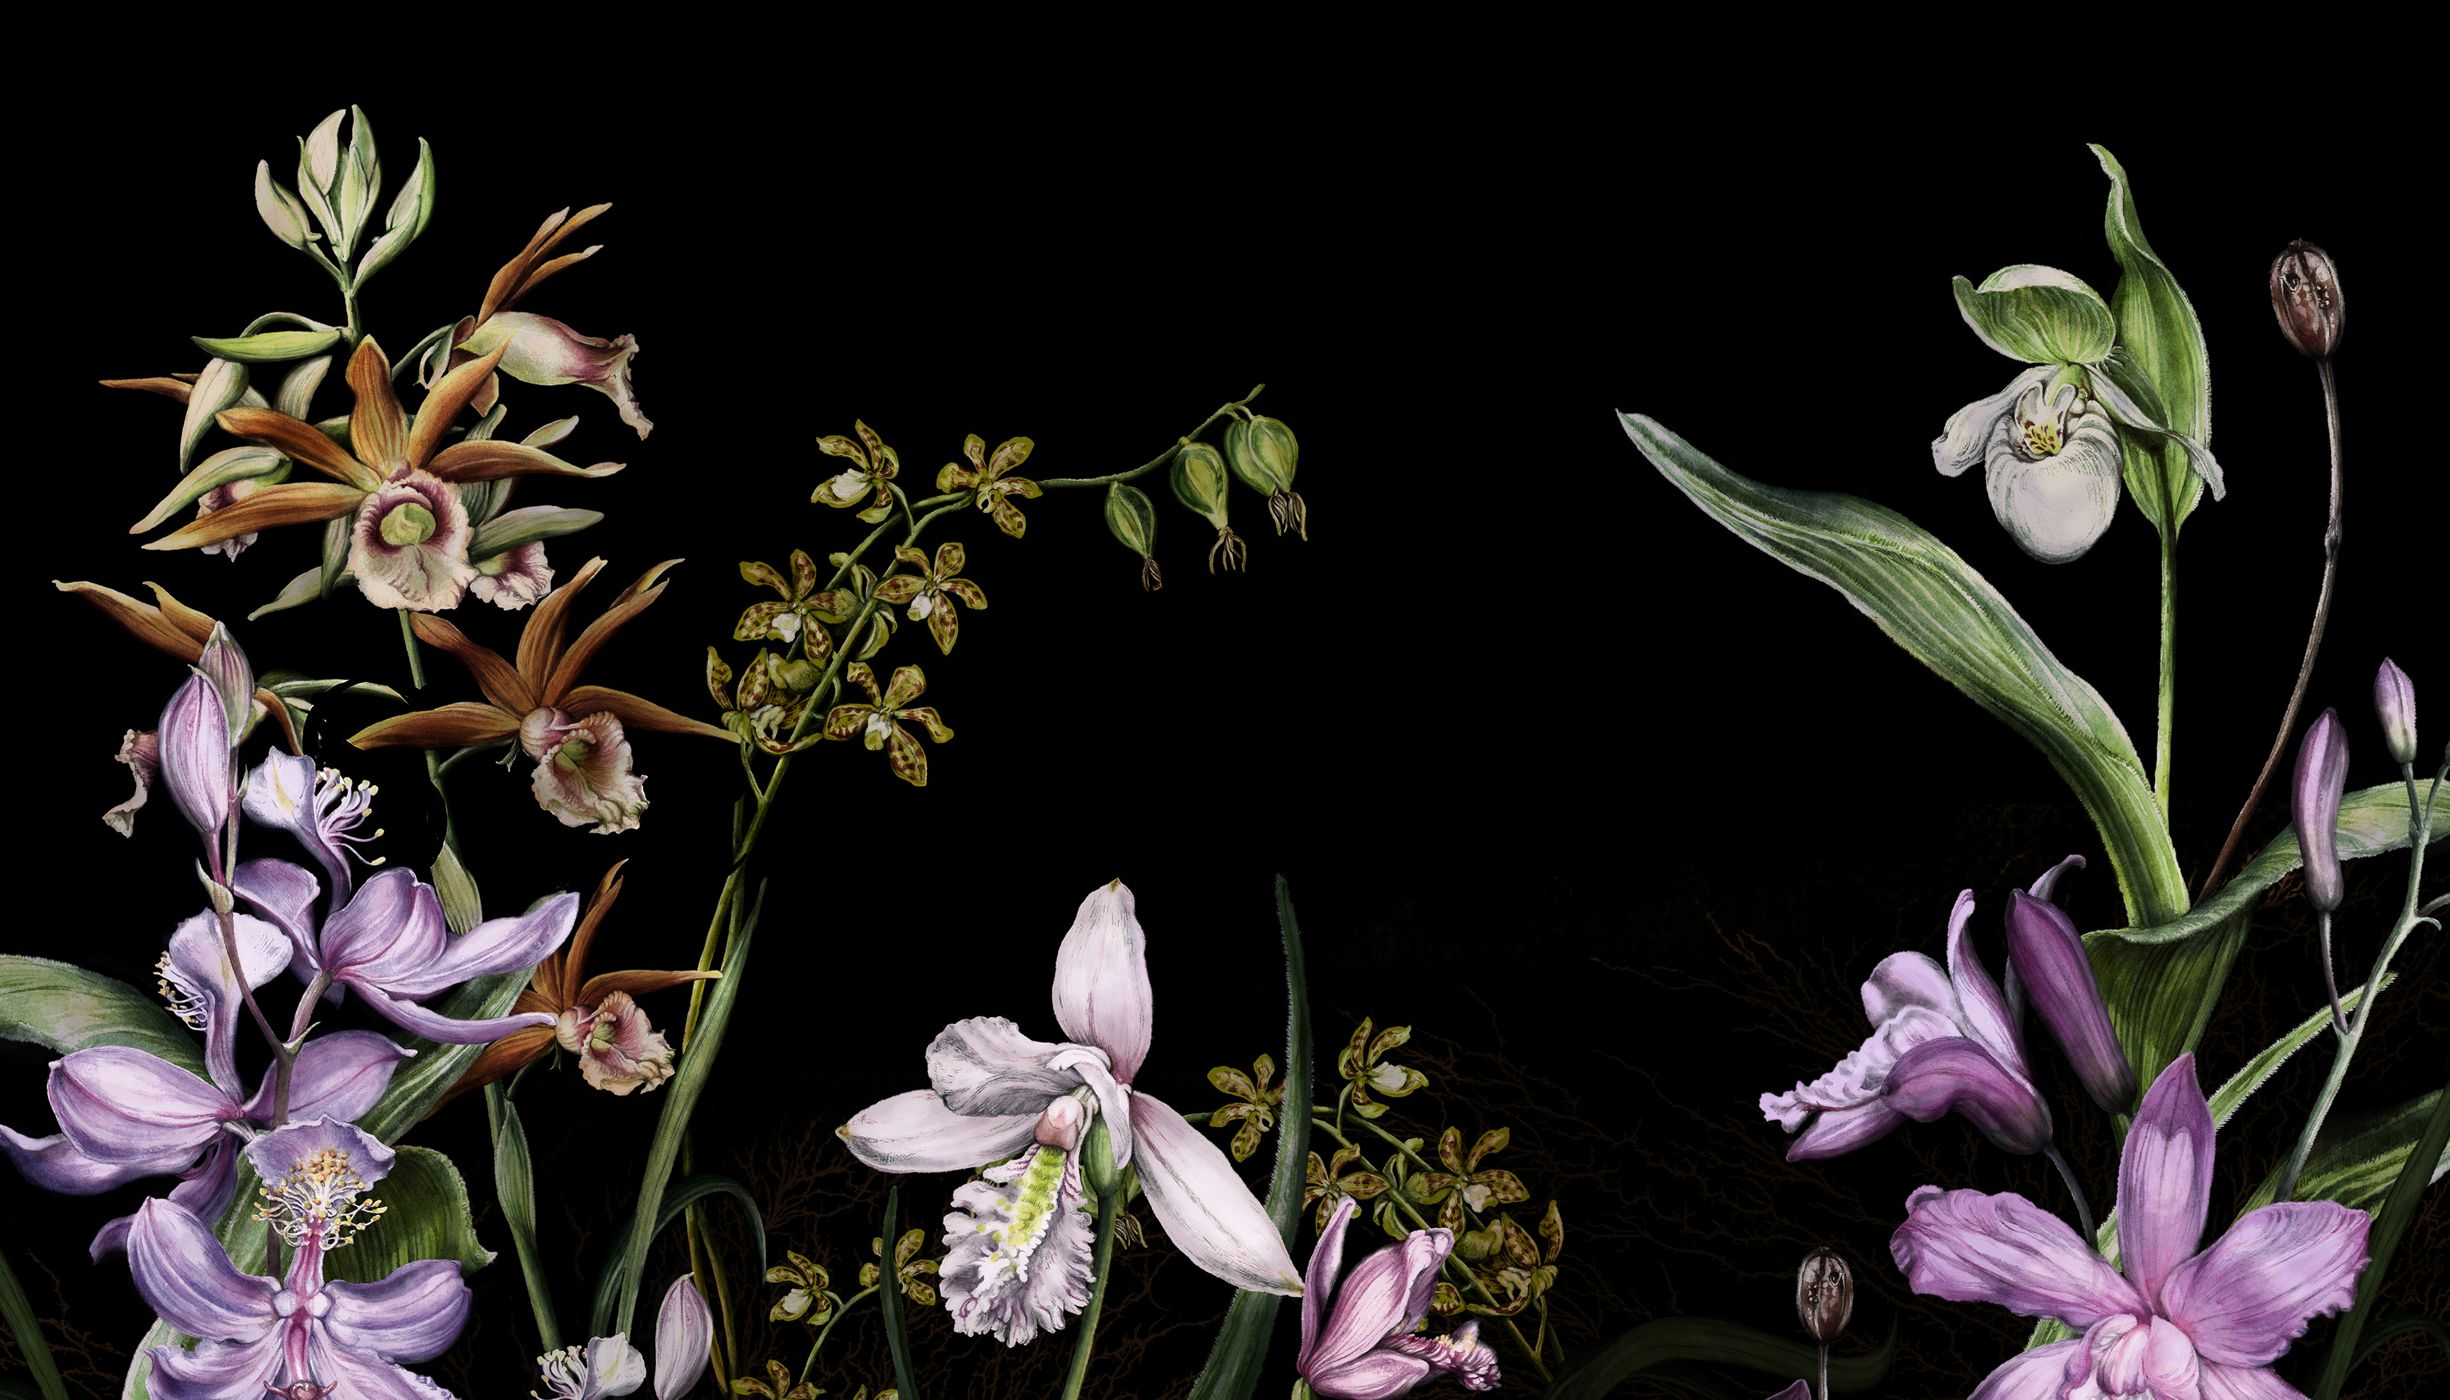 Any illustration of several kinds of orchids against a black background.